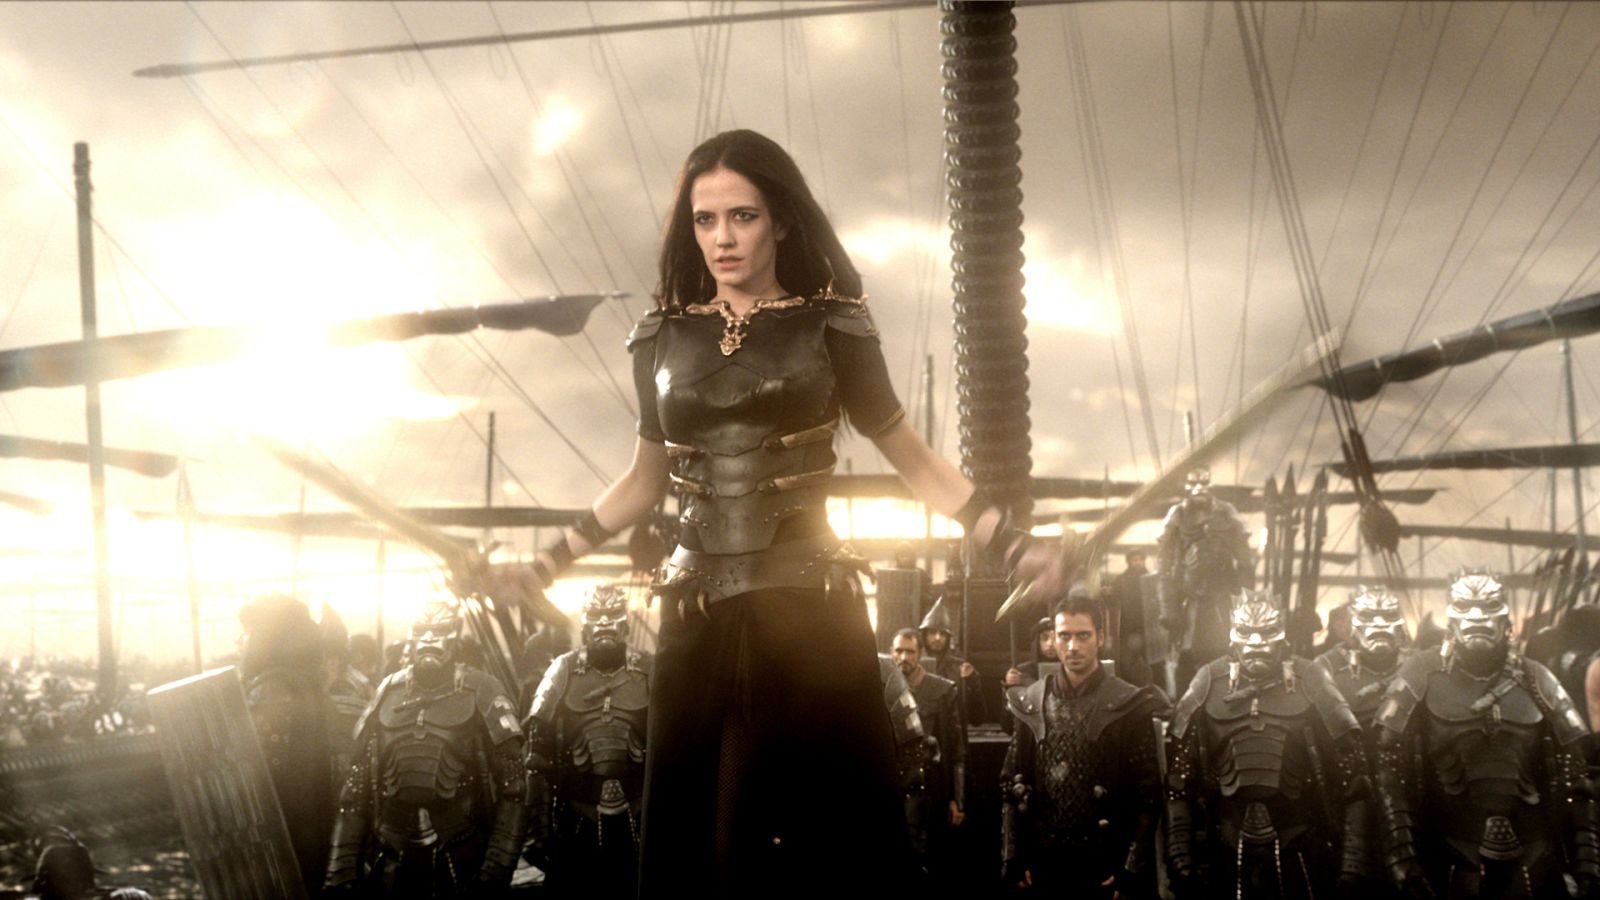 Eva Green as Artemisia in 300: Rise of an Empire (2014)